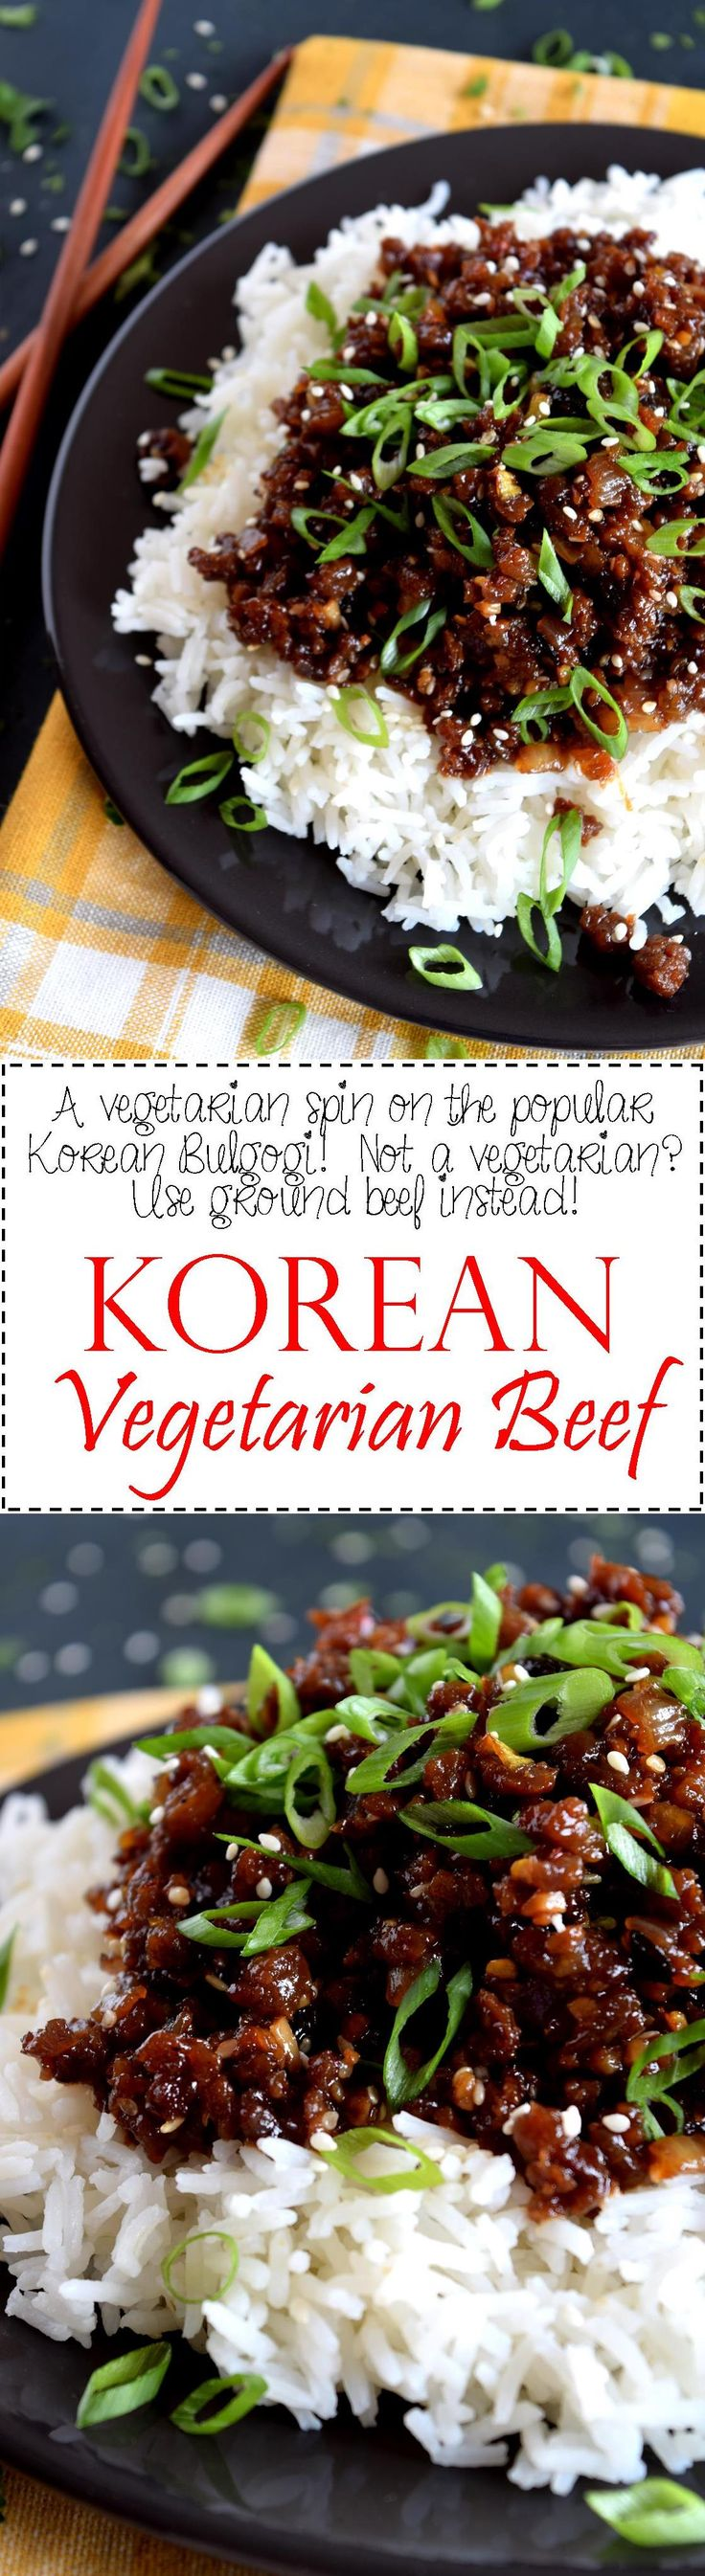 Korean Vegetarian Beef  - A vegetarian version of the popular bulgogi.  My version – Korean Vegetarian Beef – uses textured vegetable protein to achieve the same results as ground beef.  20 minutes start to finish!